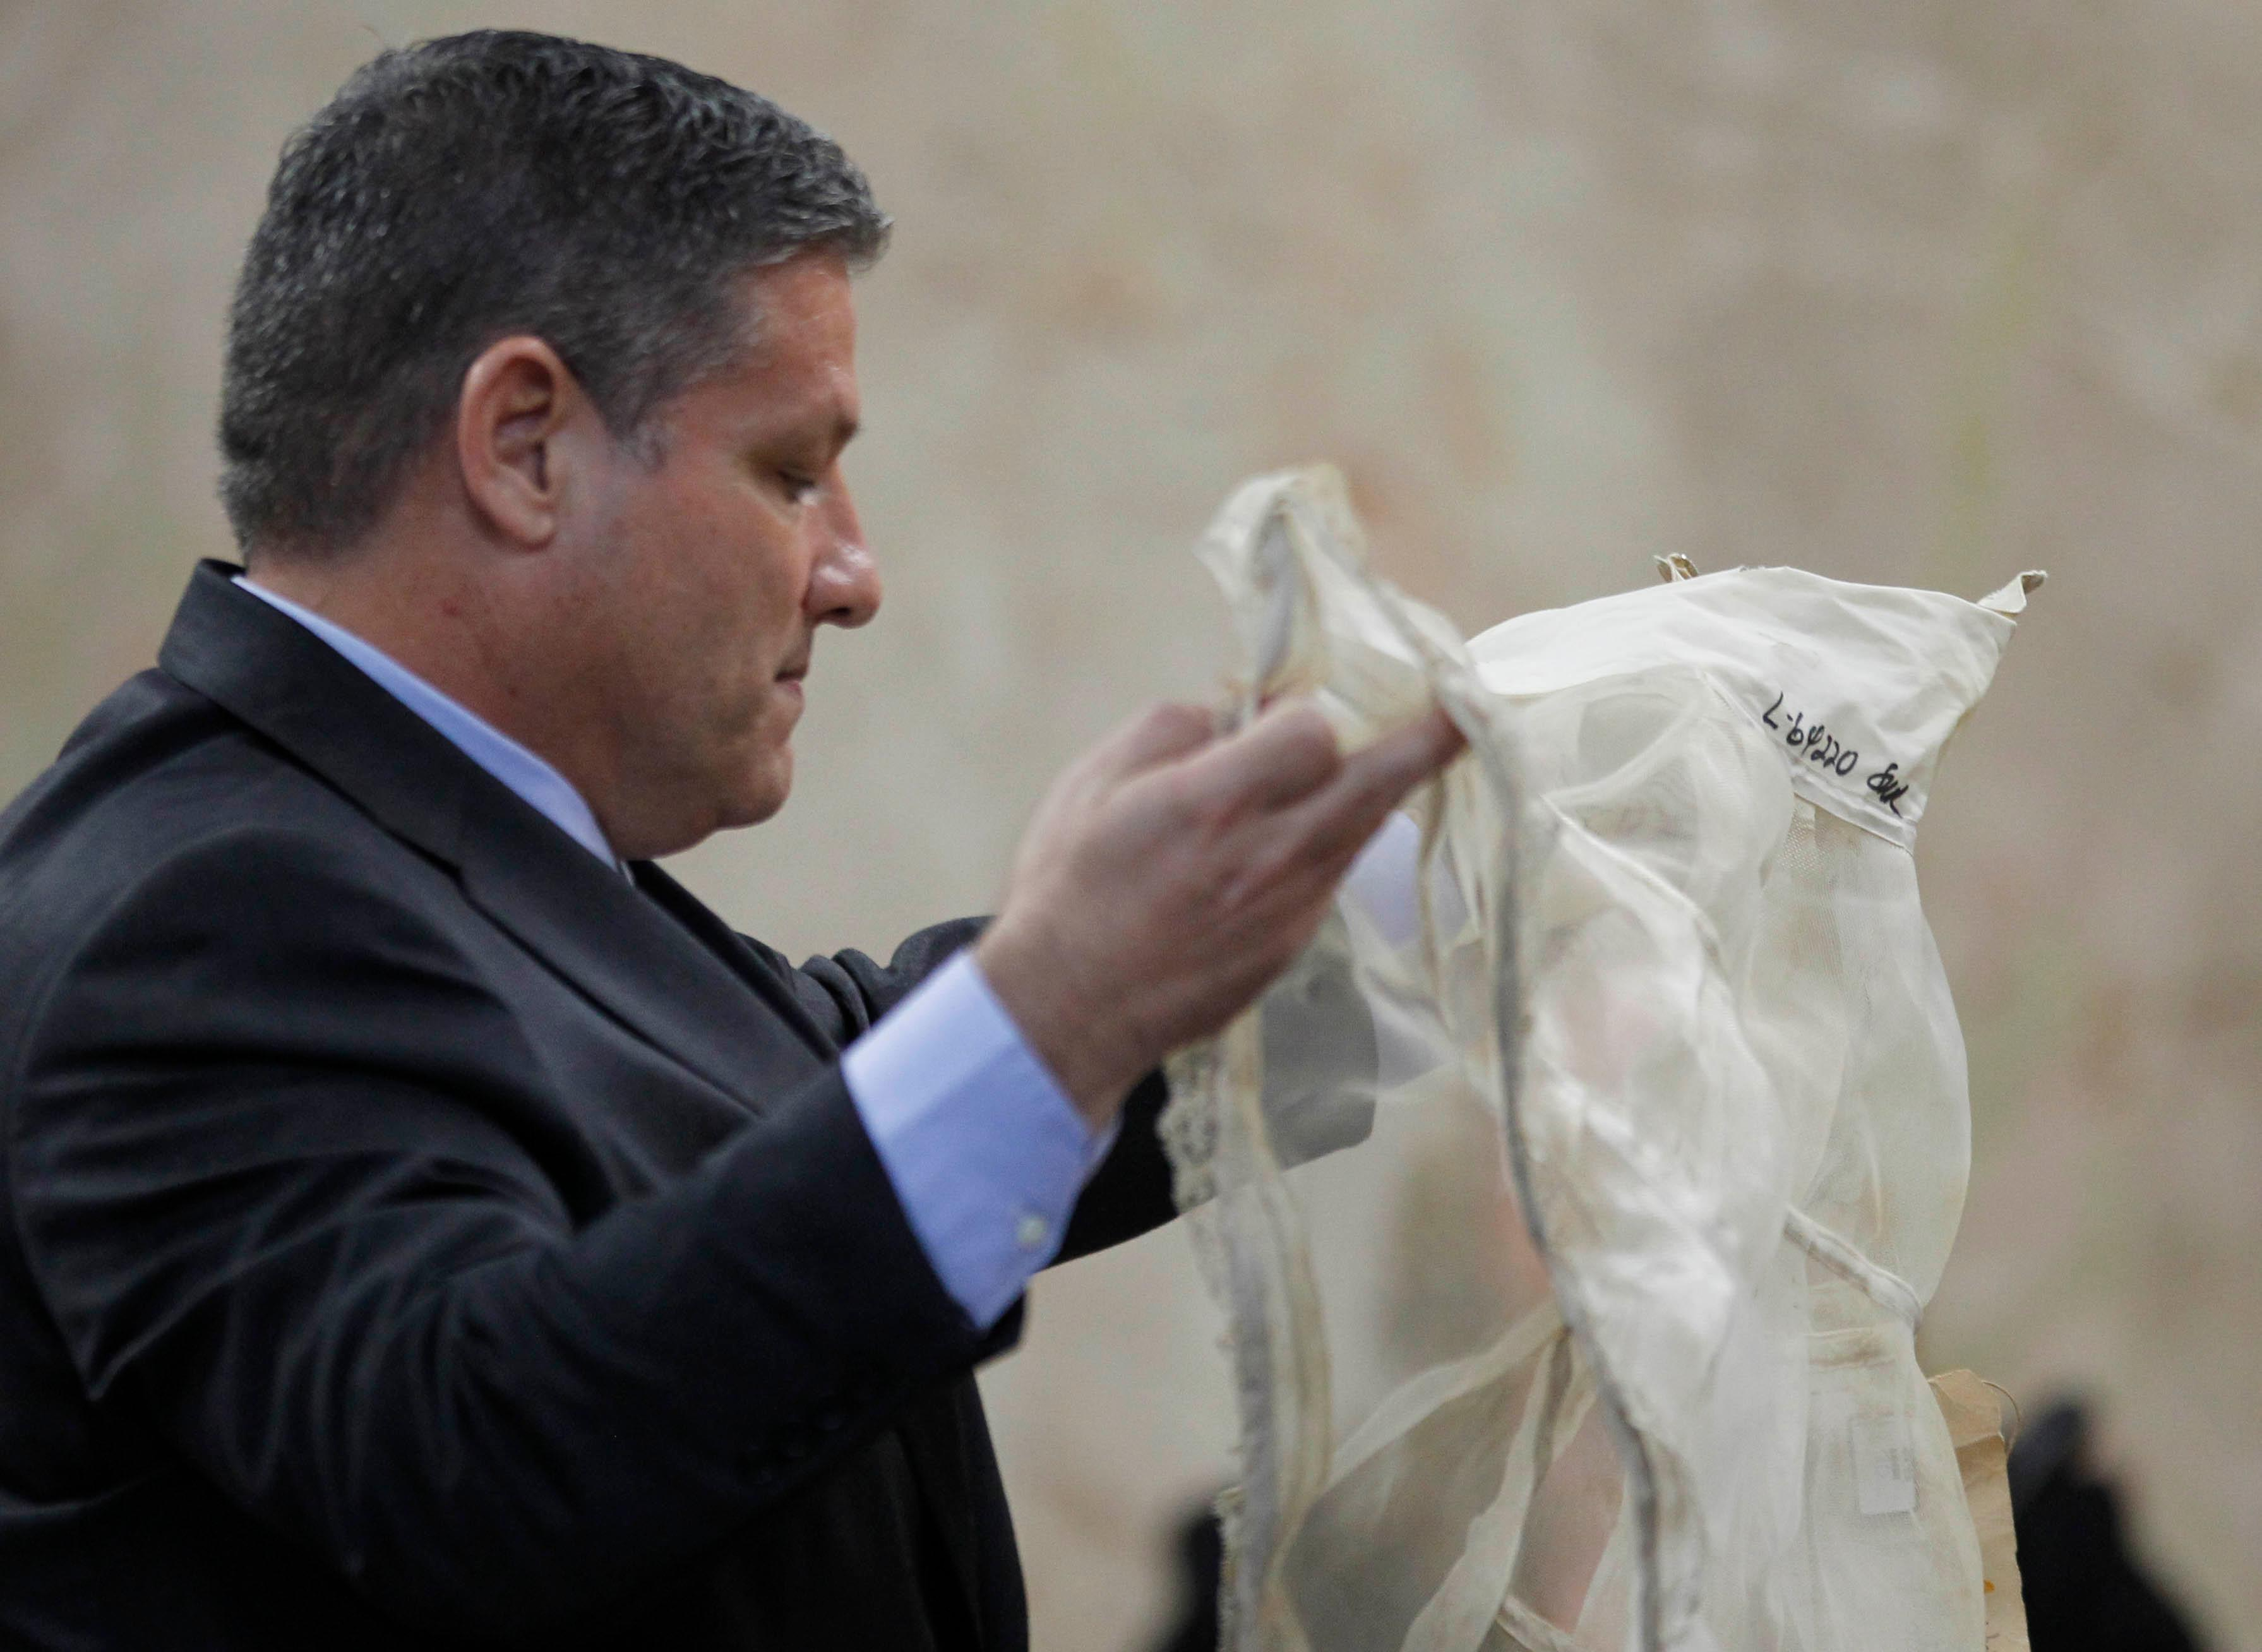 Hidalgo County Assistant District Attorney Michael Garza holds up the petticoat worn by Irene Garza when her body was discovered in 1960 during testimony in John Bernard Feit's trial for the murder of Garza Wednesday, December 6, 2017, at the Hidalgo County Courthouse in Edinburg. (Nathan Lambrecht/The Monitor/Pool)